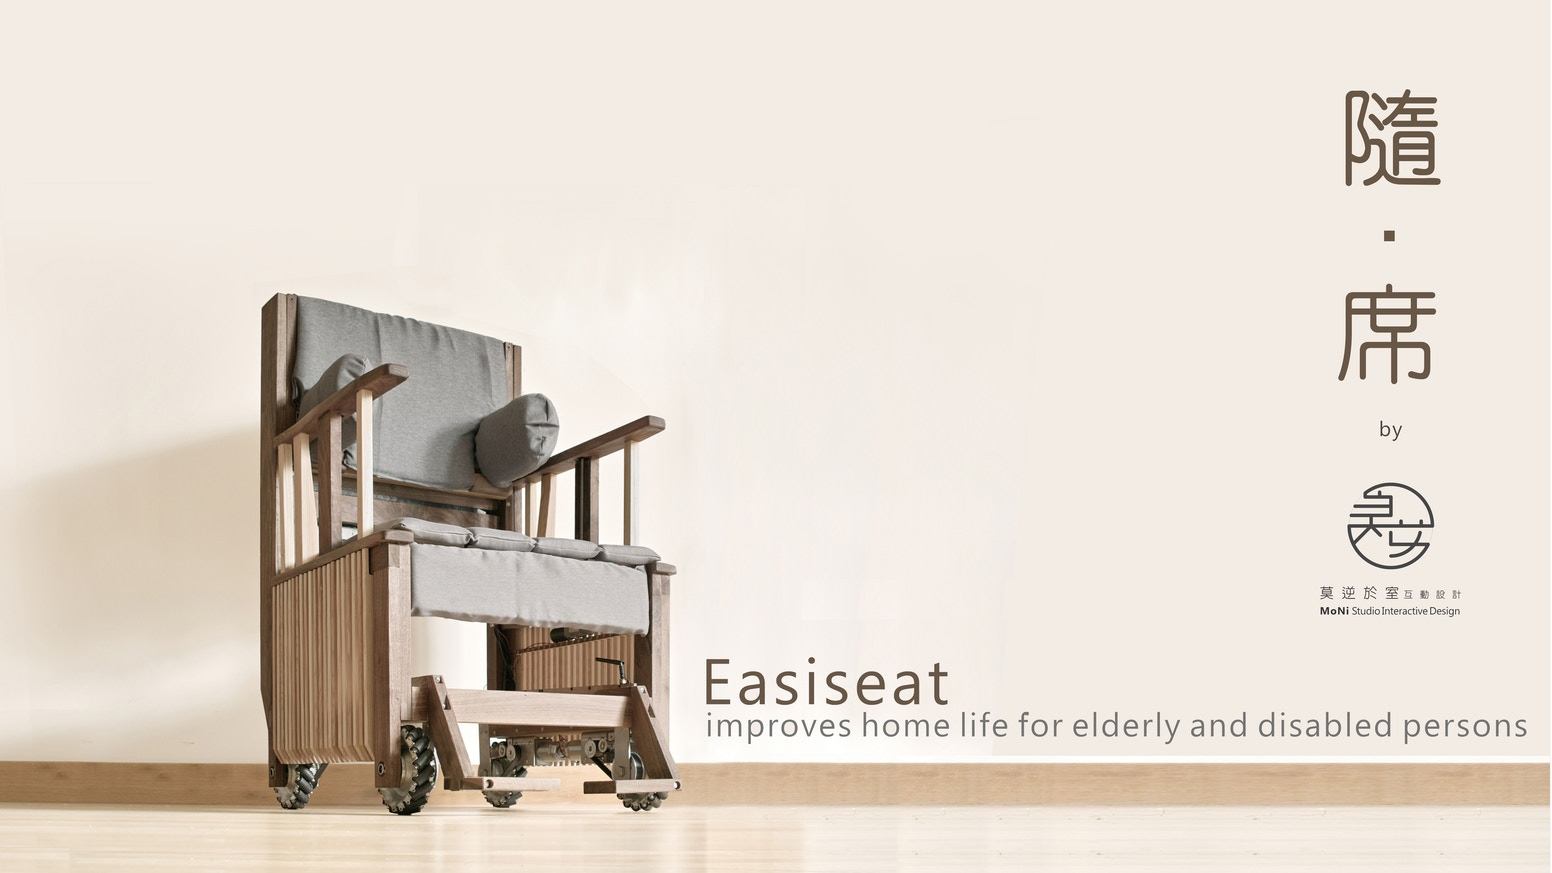 Easiseat 隨席 An Innovative Furniture For Disabled Persons By Kt